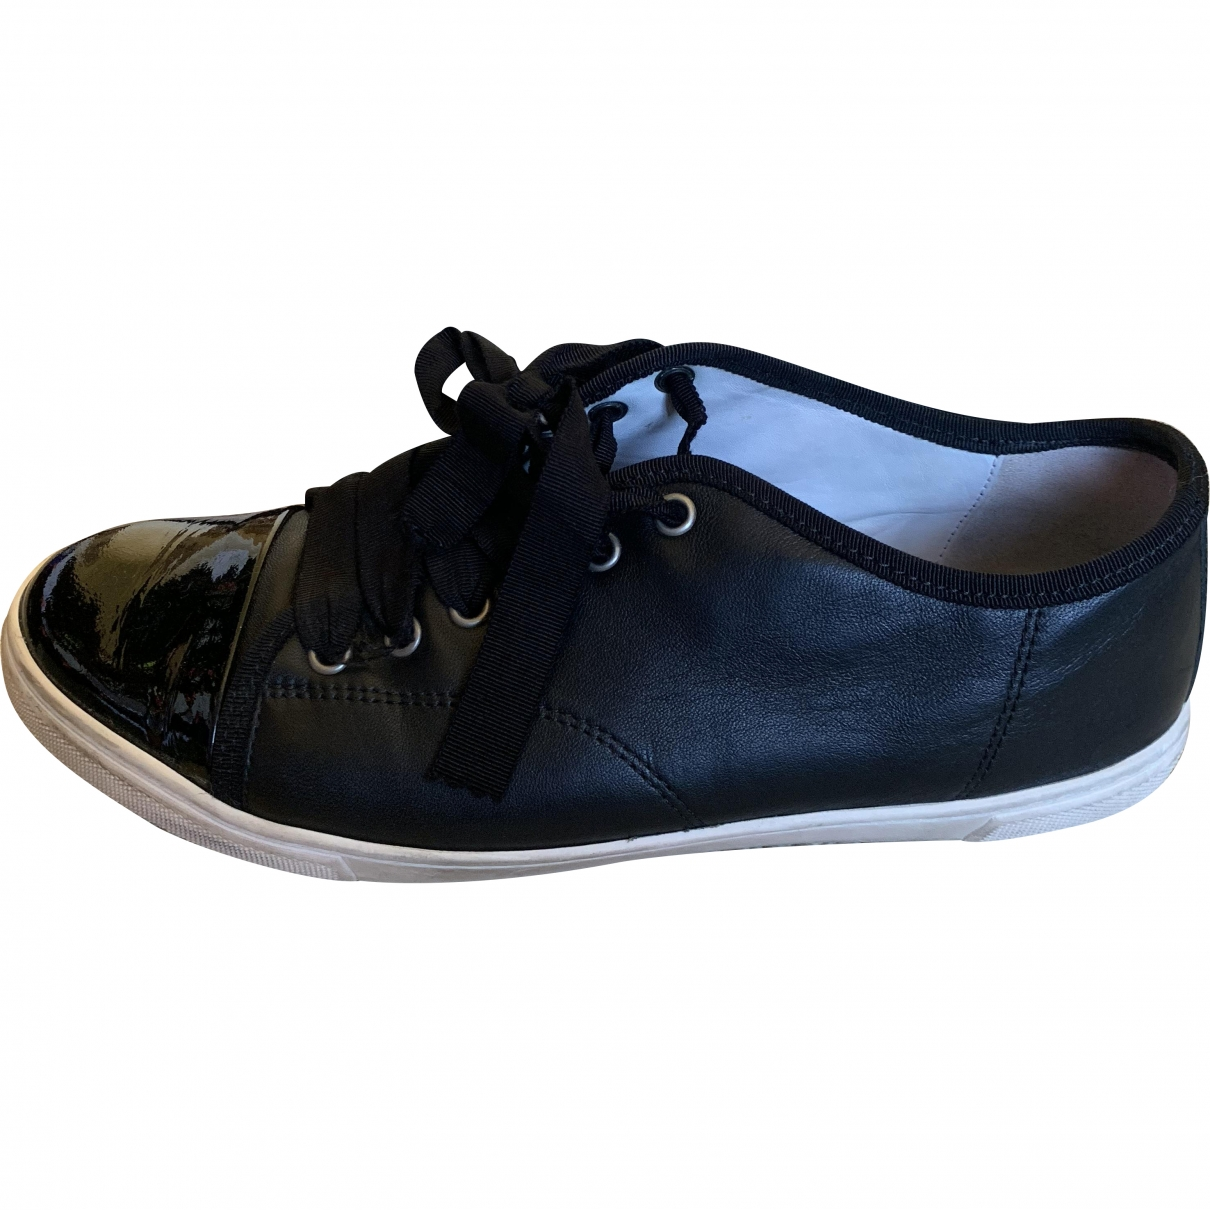 Lanvin \N Black Leather Trainers for Women 40 EU